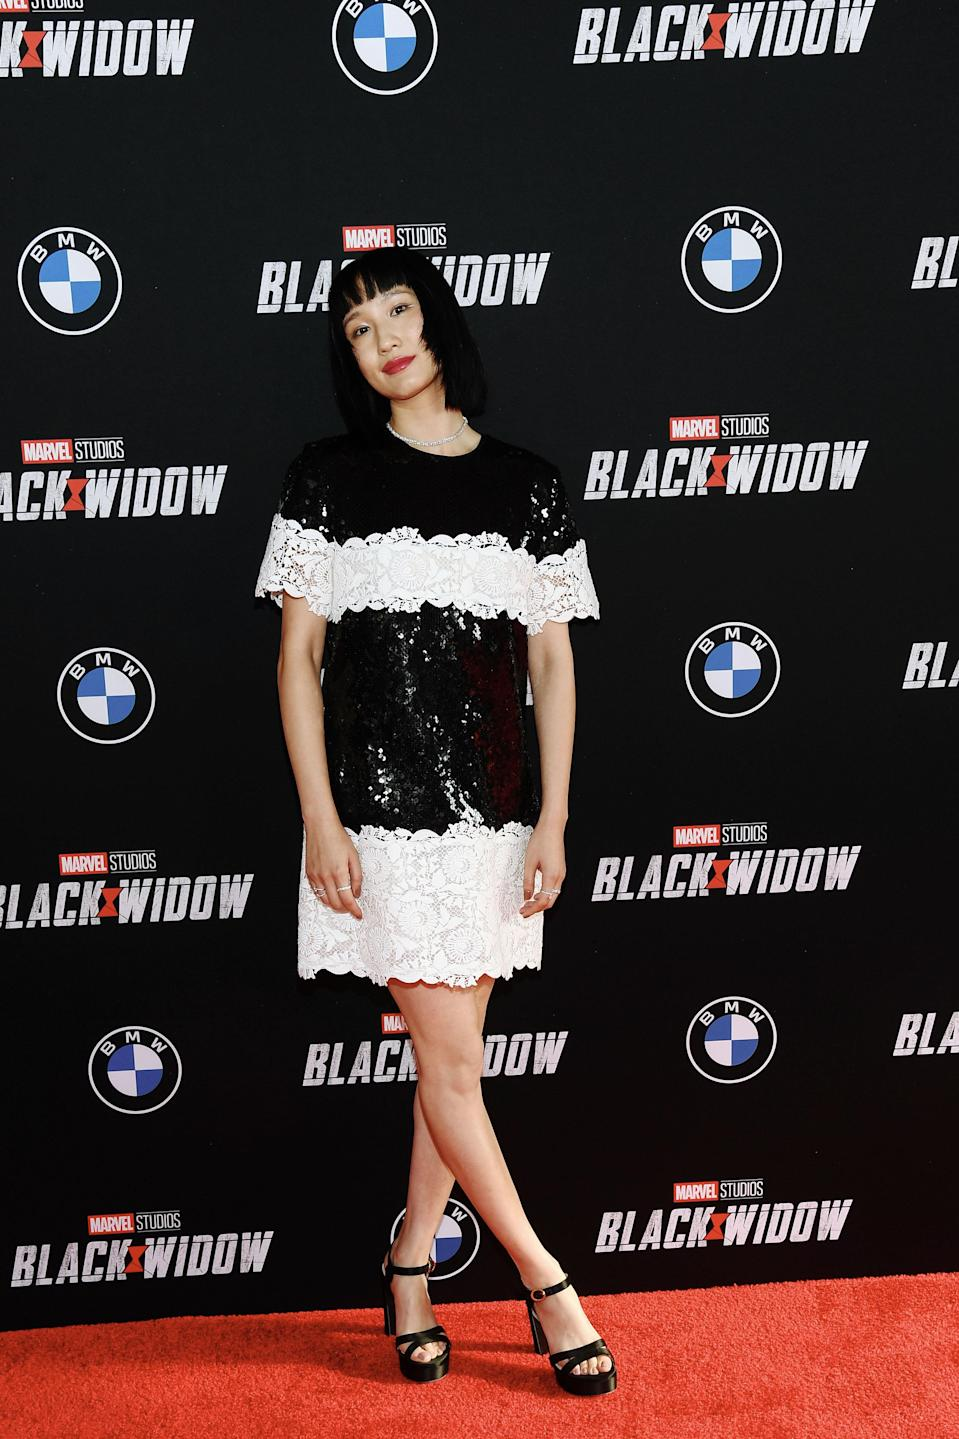 Meng'er Zhang arrives at the Fan Screening of Marvel's Black Widow at the El Capitan Theatre on June 29, 2021 in Hollywood, California. - Credit: Michael Buckner for PMC